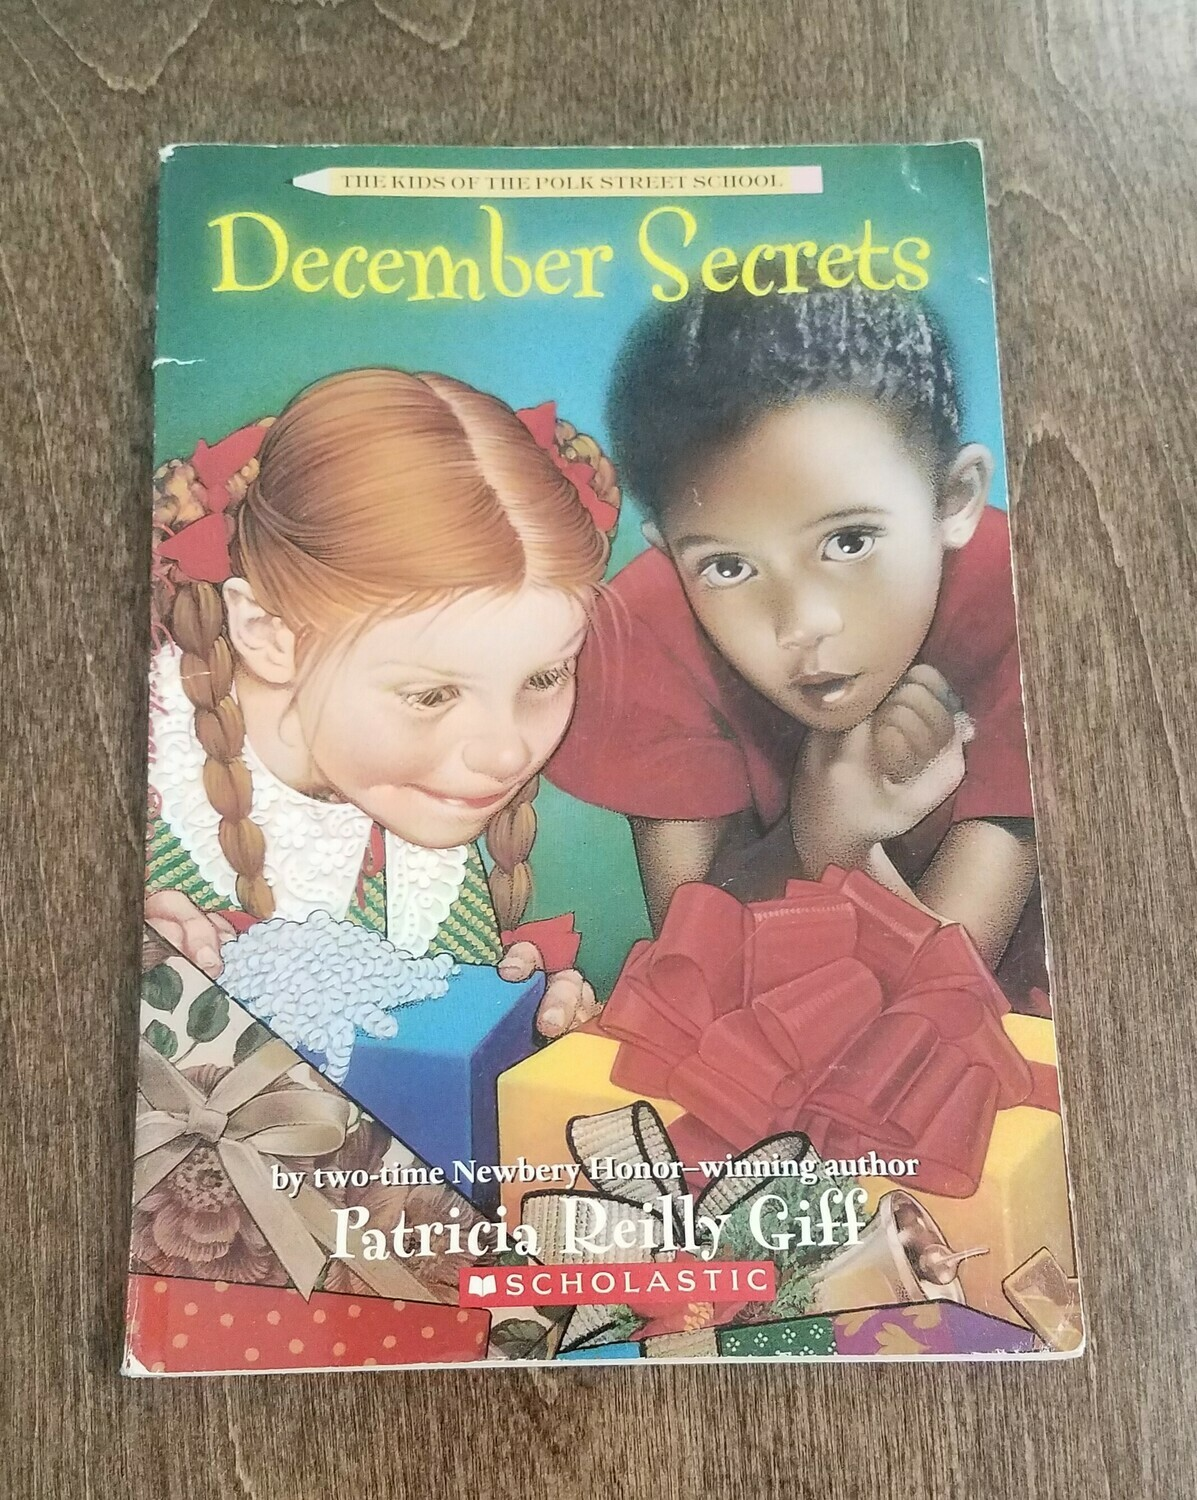 December Secrets by Patricia Reilly Giff